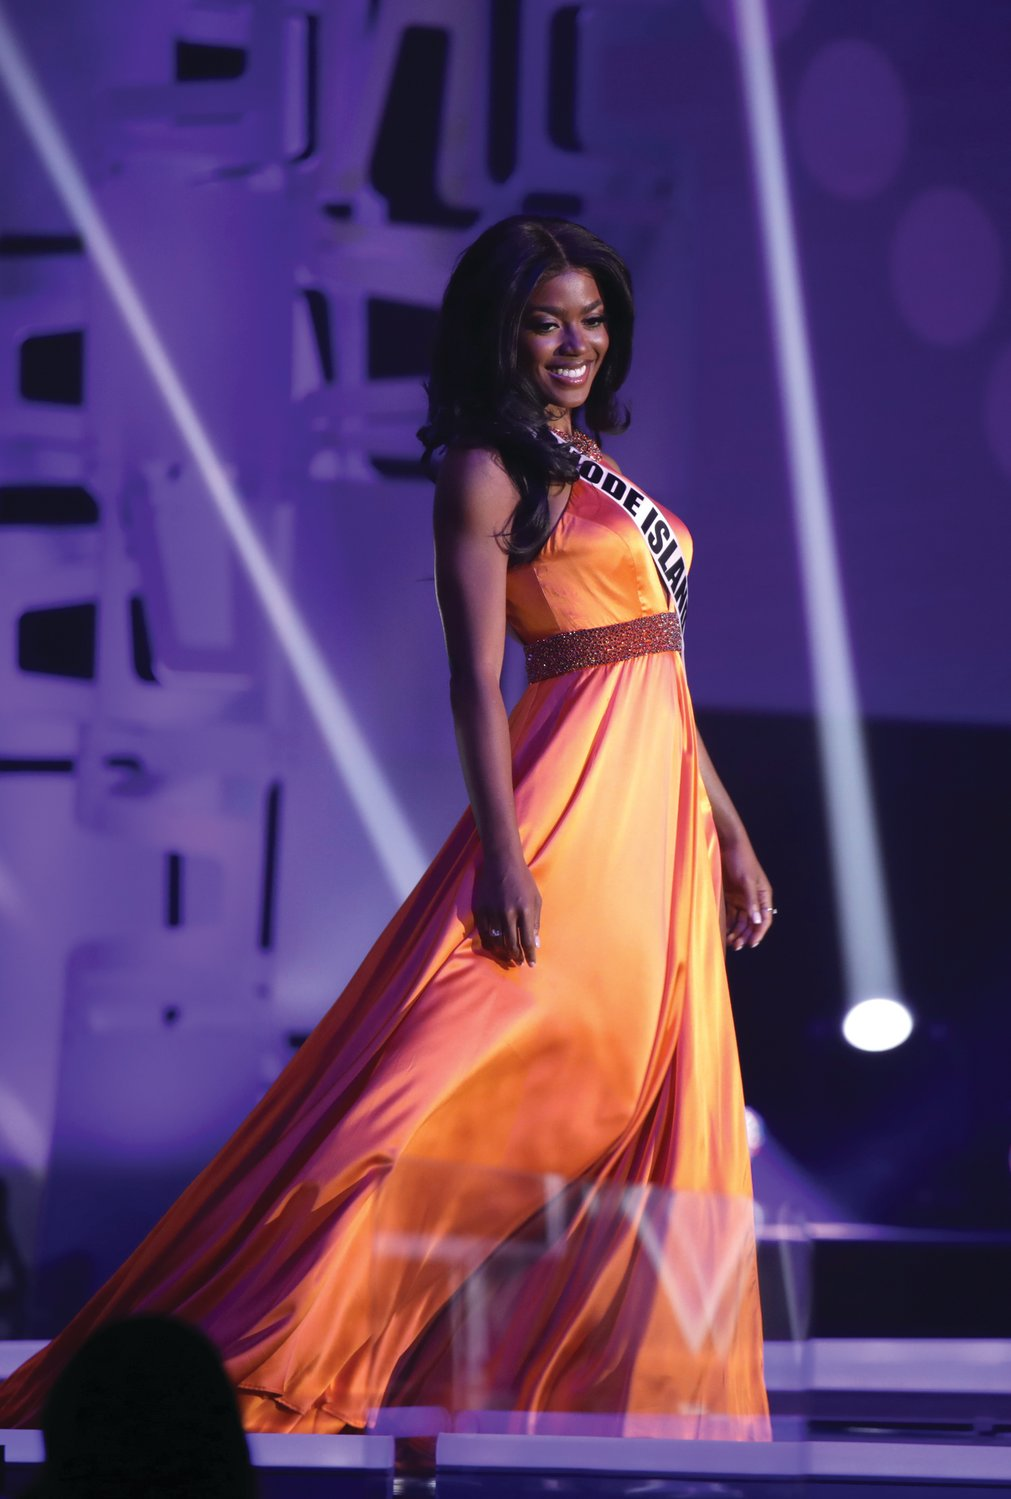 Jonet Nichelle, Miss Rhode Island USA 2020, on stage in a Sherri Hill gown, an official sponsor of the 2020 Miss USA competition, at the Miss USA Preliminary Competitions, on November 6, 2020 at Graceland in Memphis, Tennessee.